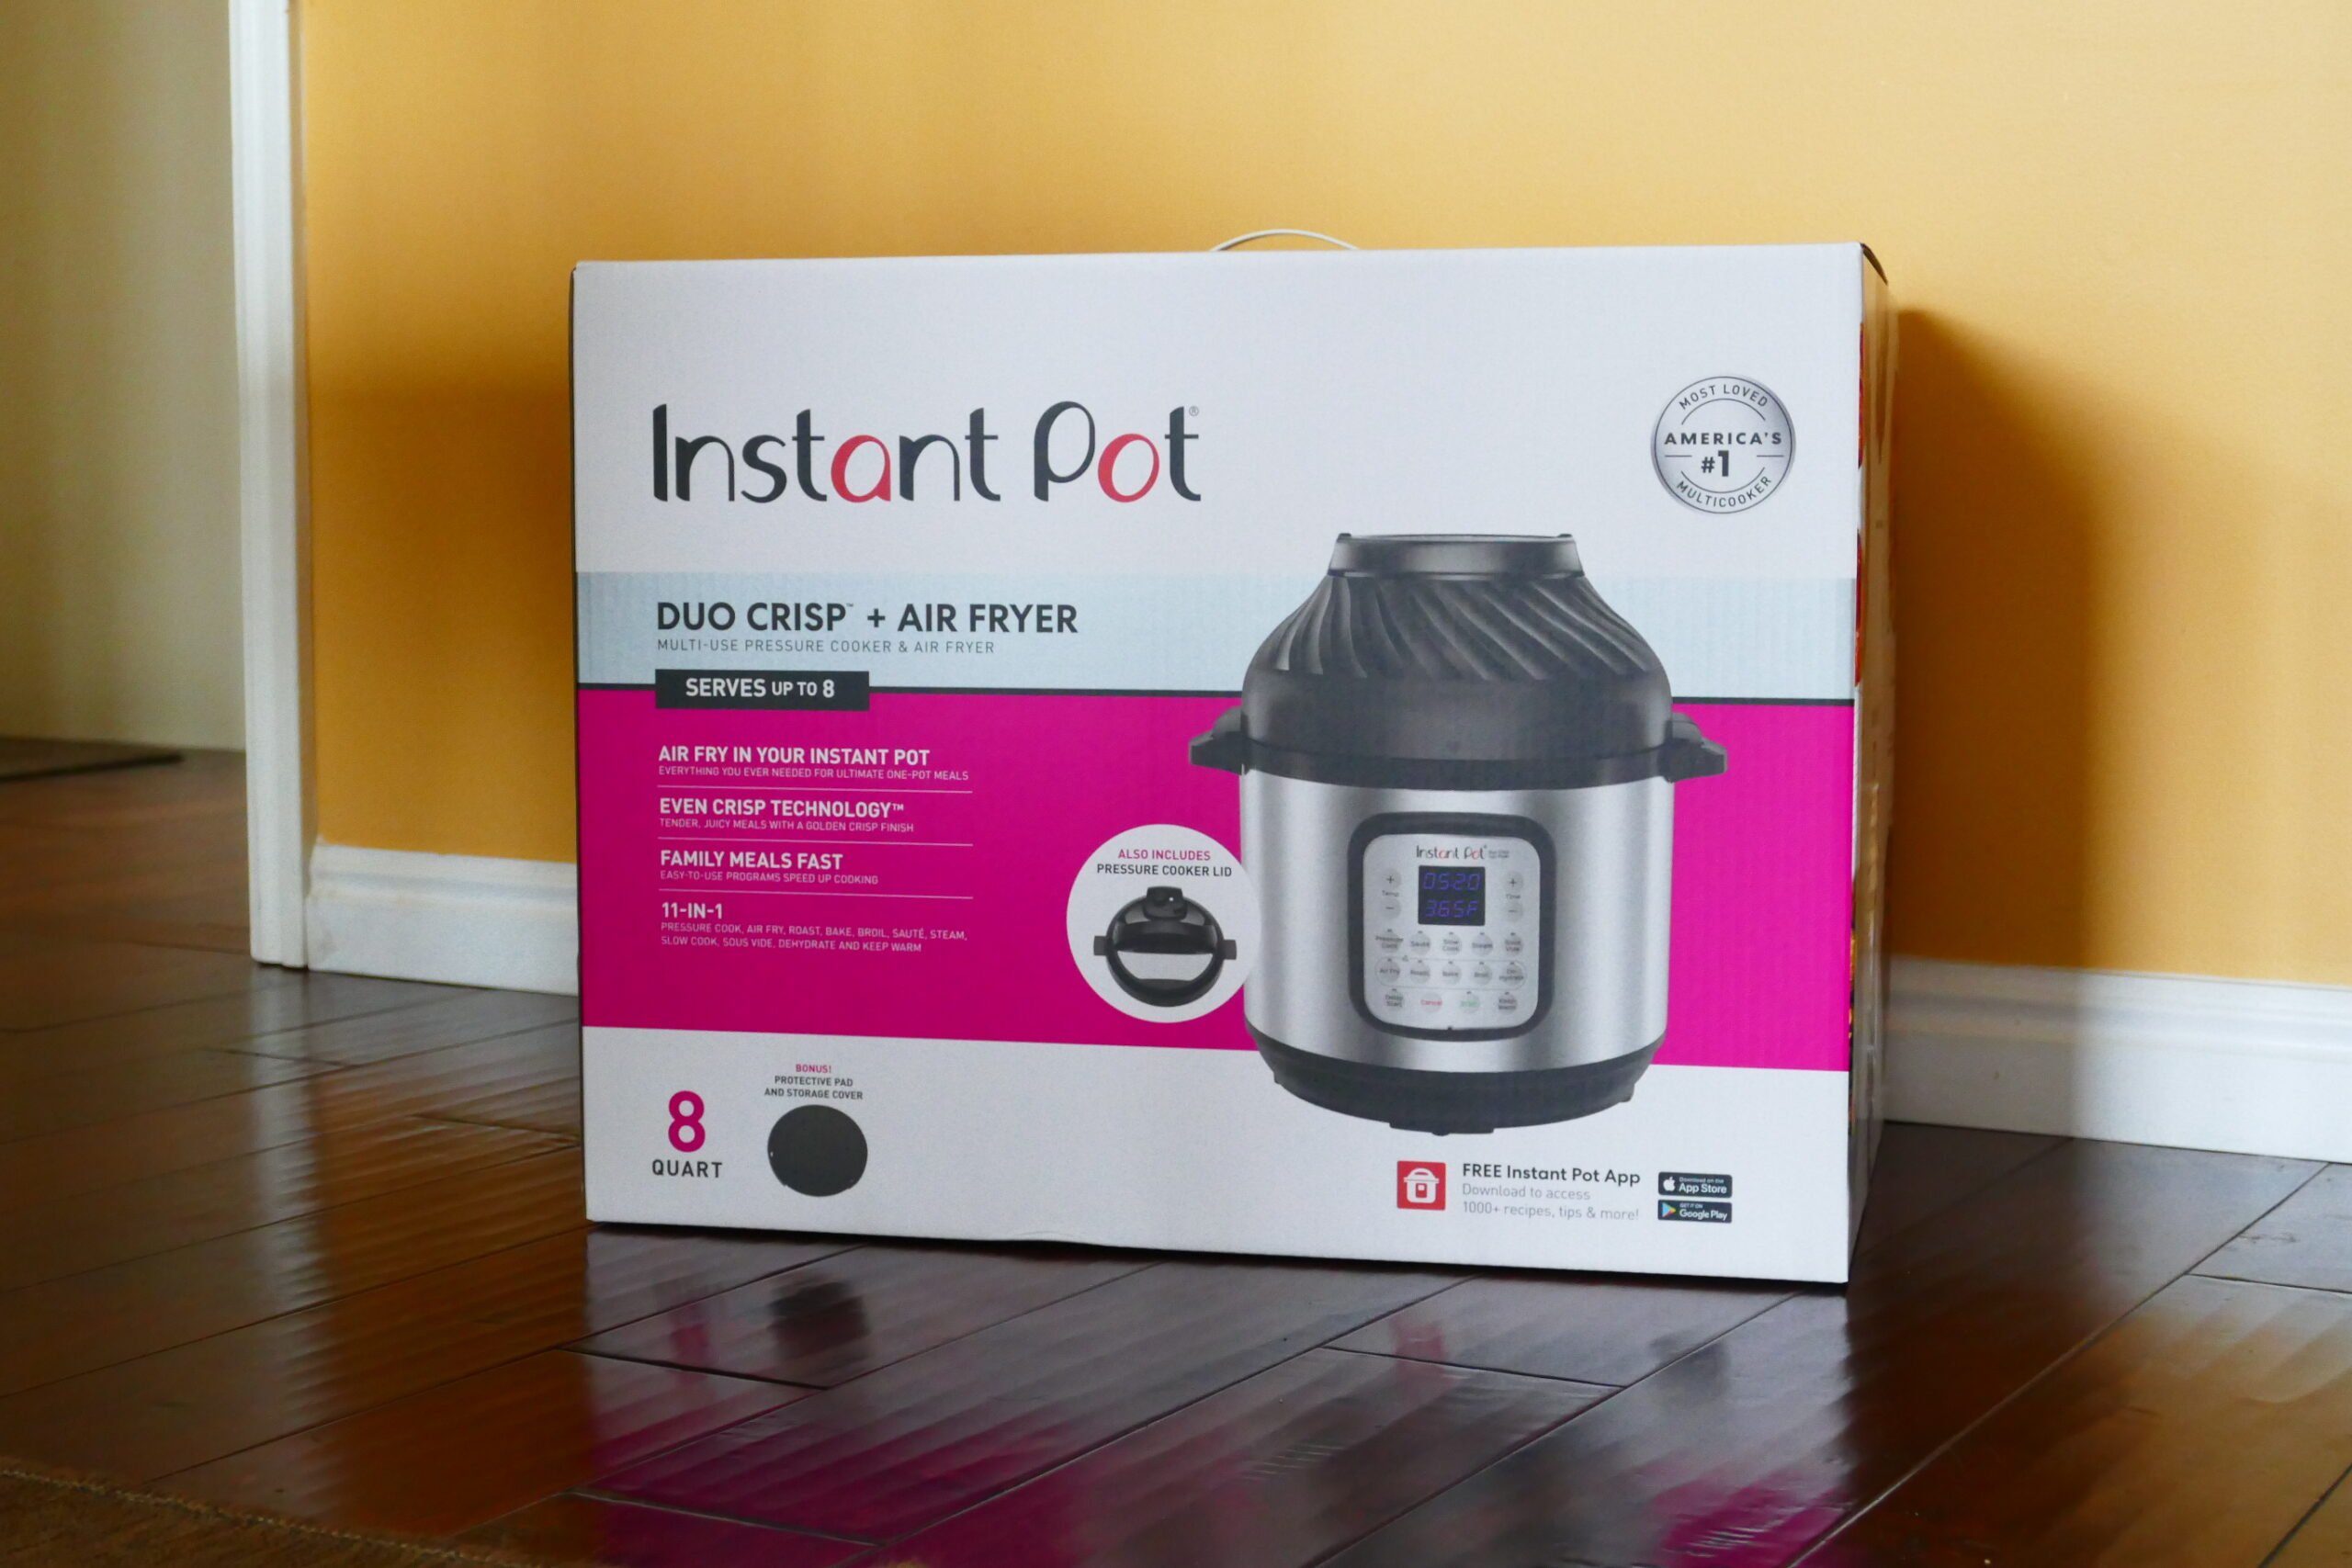 Instant Pot Duo Crisp Box with picture of duo crisp and air fryer lid and words: Instant Pot Duo Crisp + Air Fryer and other specifications